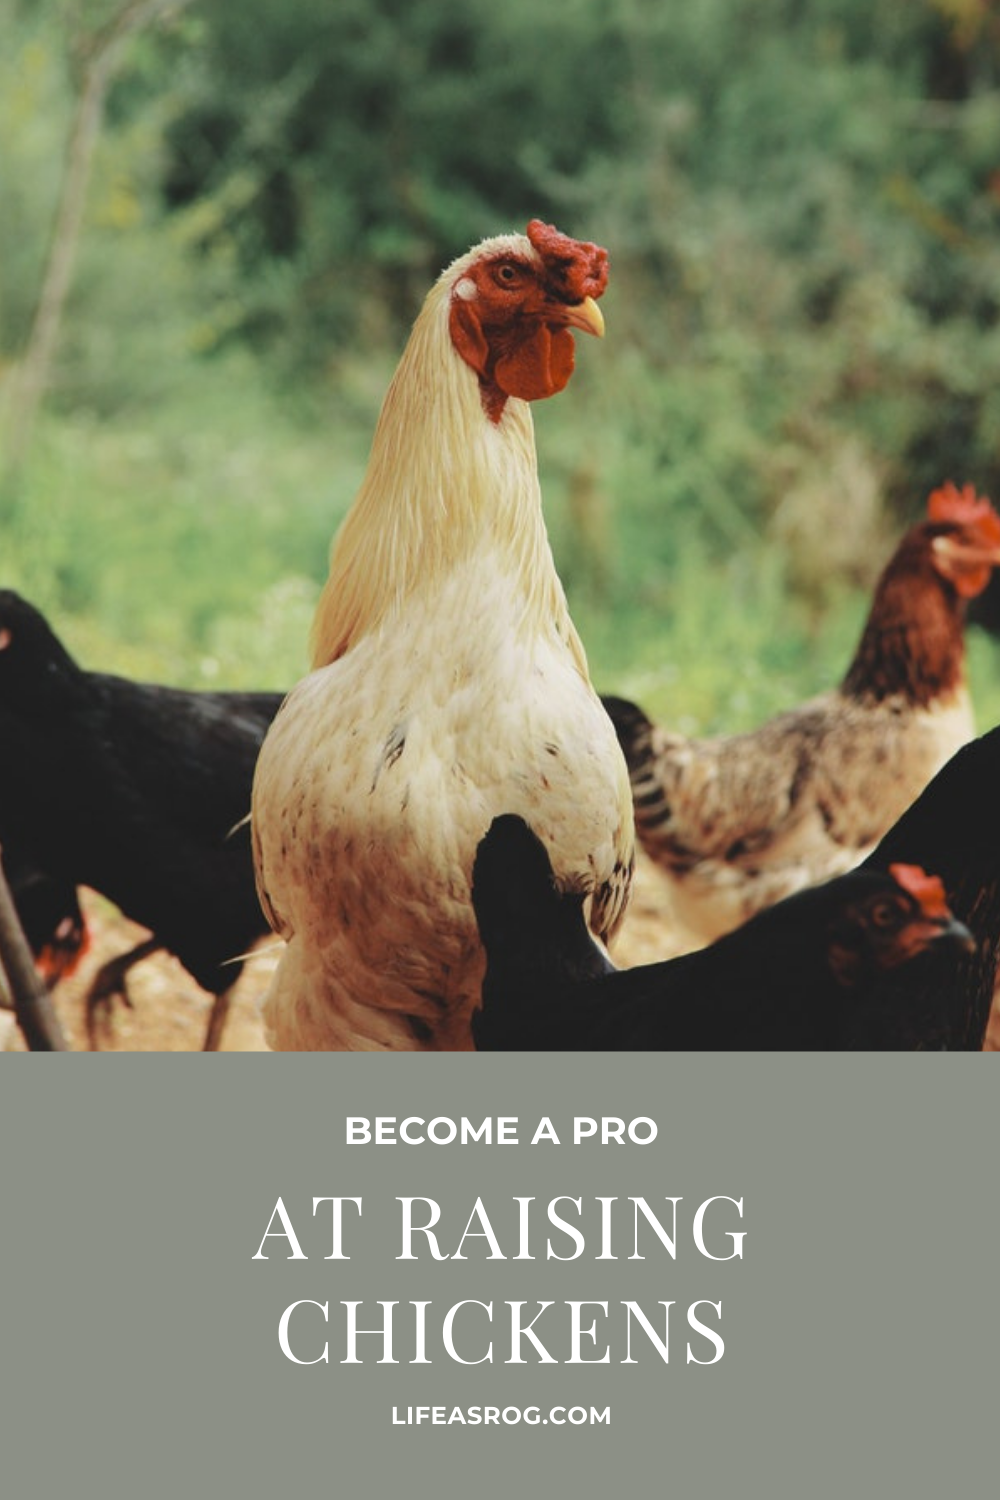 Become a Pro at Raising Chickens